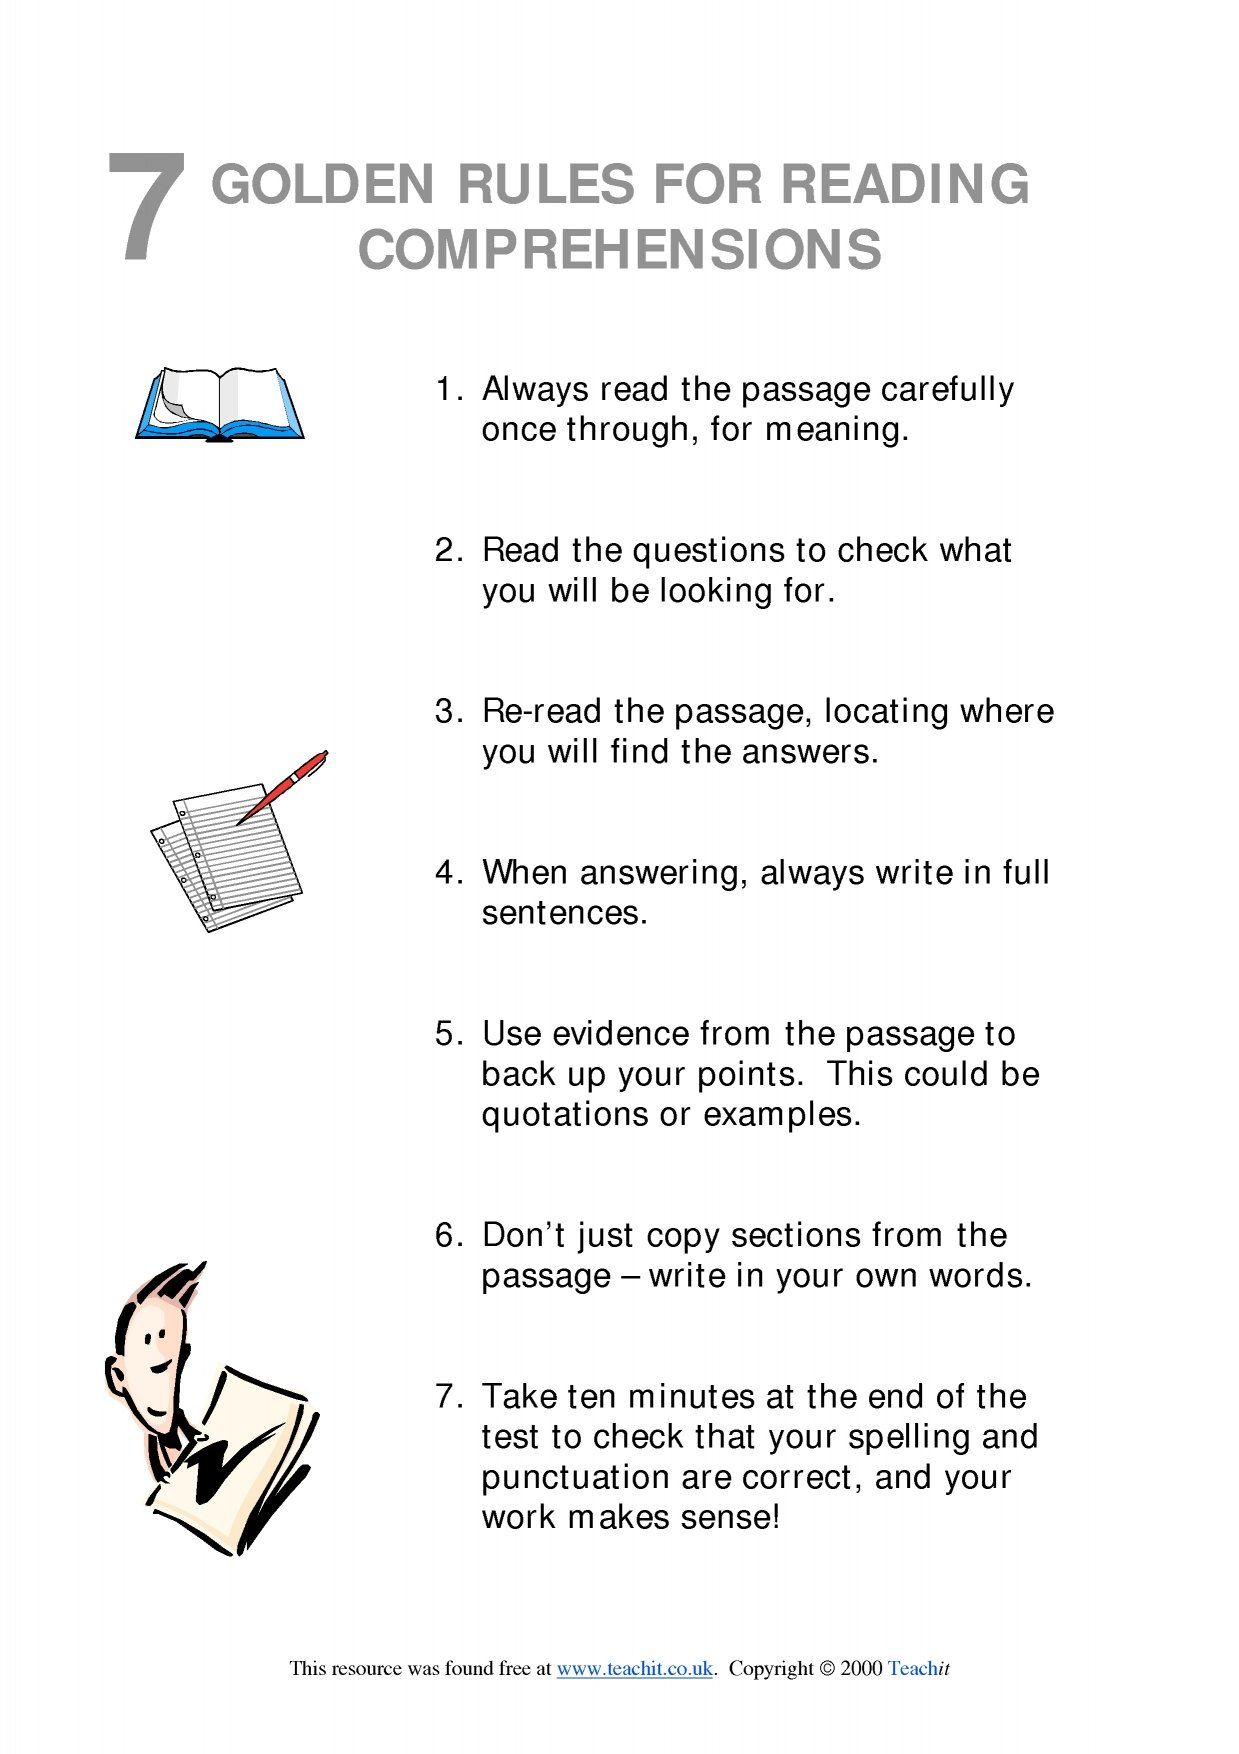 7 Golden Rules For Reading Comprehensions